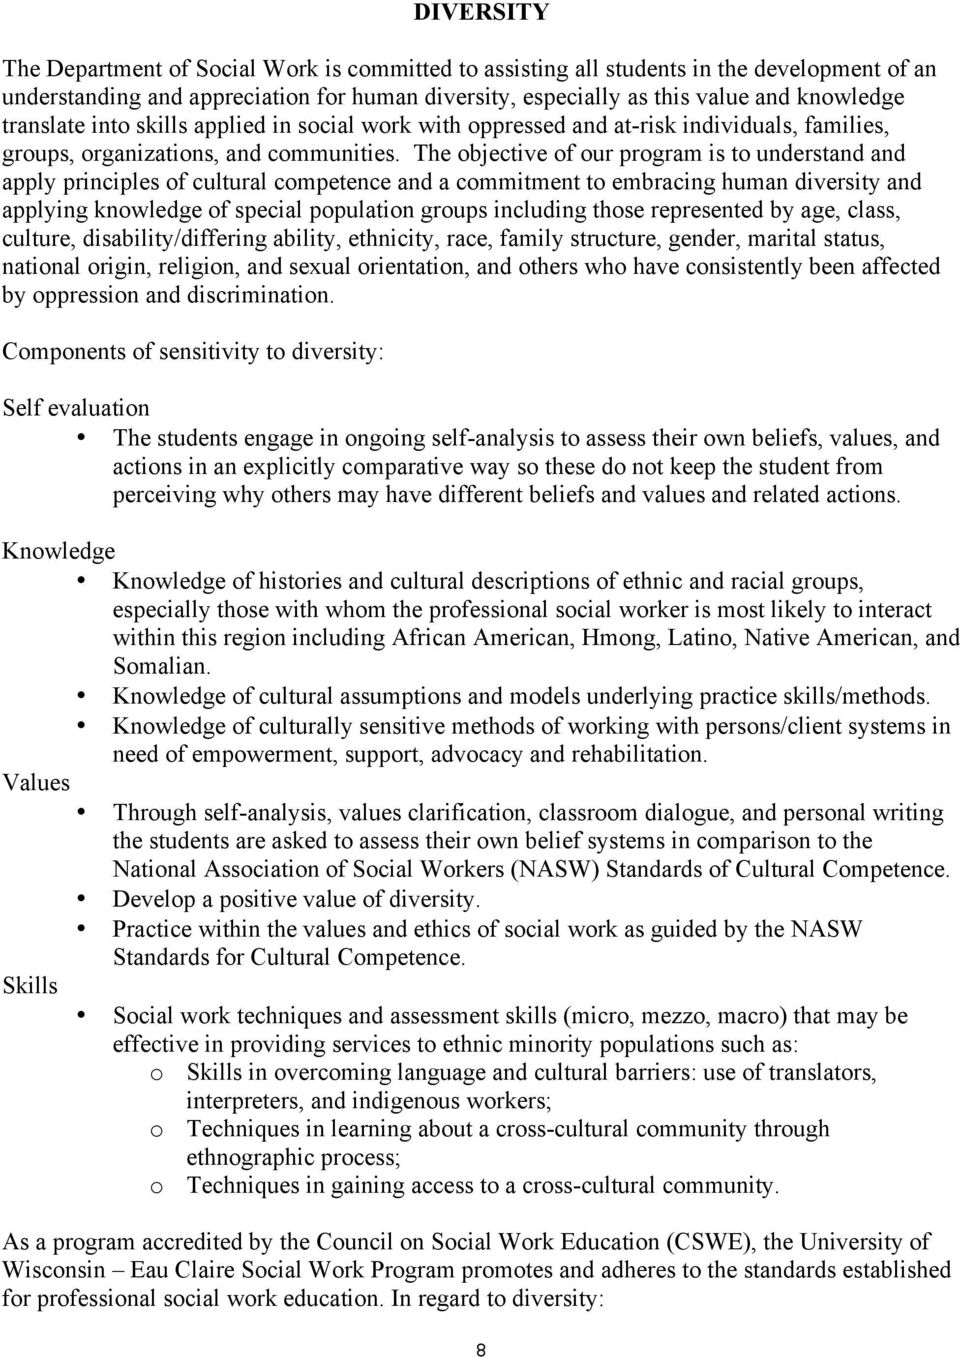 The objective of our program is to understand and apply principles of cultural competence and a commitment to embracing human diversity and applying knowledge of special population groups including